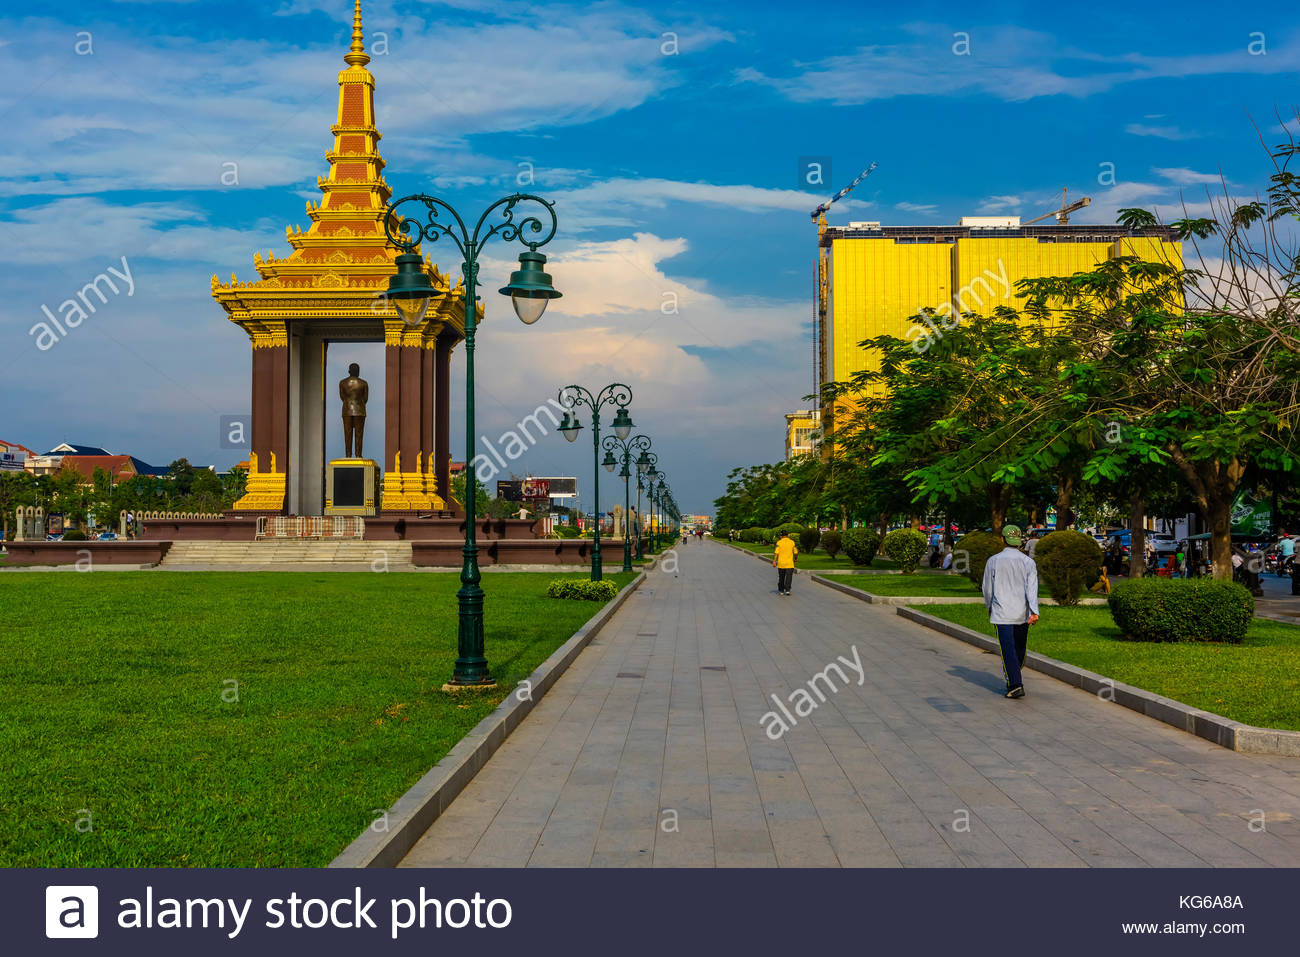 Norodom Sihanouk Memorial for the legendary former king/prime minister/statesman King Father Norodom Sihanouk, who Stock Photo